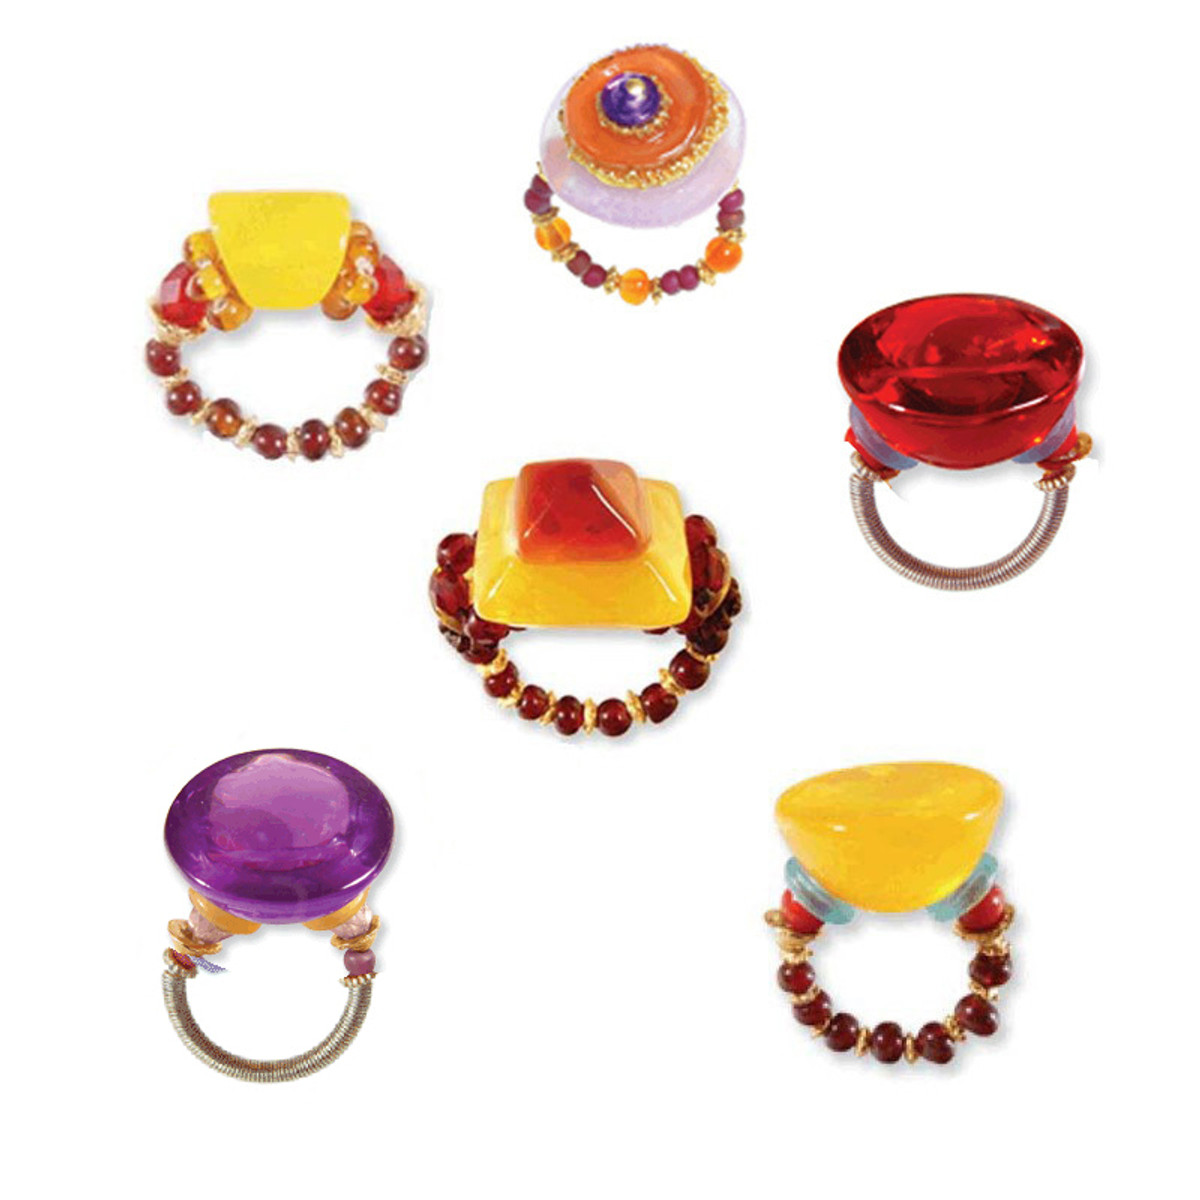 Orna Lalo Six Rings Set For Every Day Look